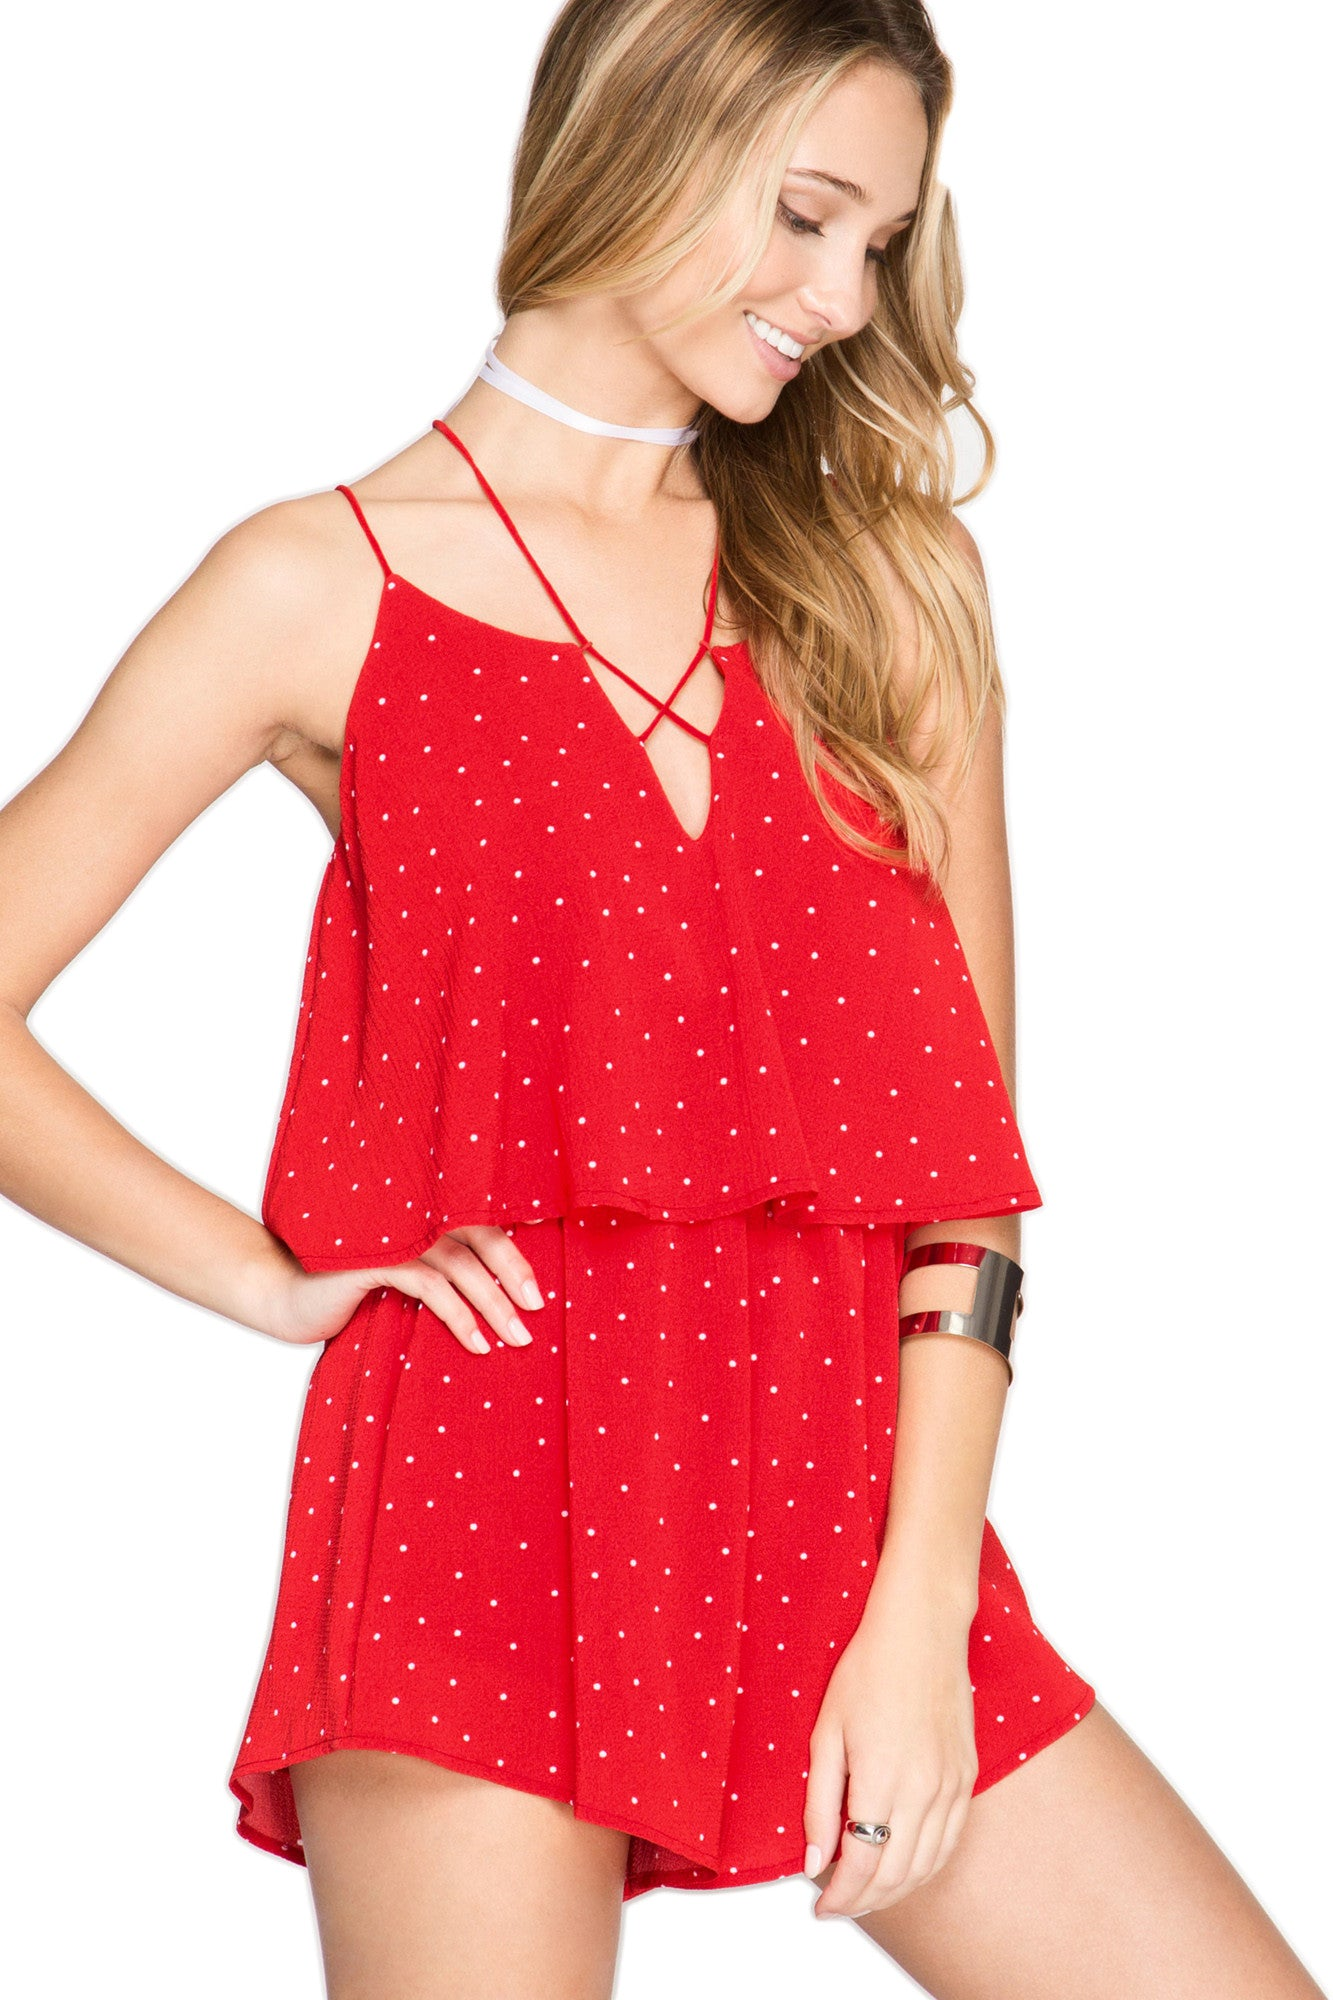 Red Hot Polka Dot Romper Romper She & Sky - Bows and Arrows FSU Seminoles and UF Gators Women's Game Day Dresses and Apparel